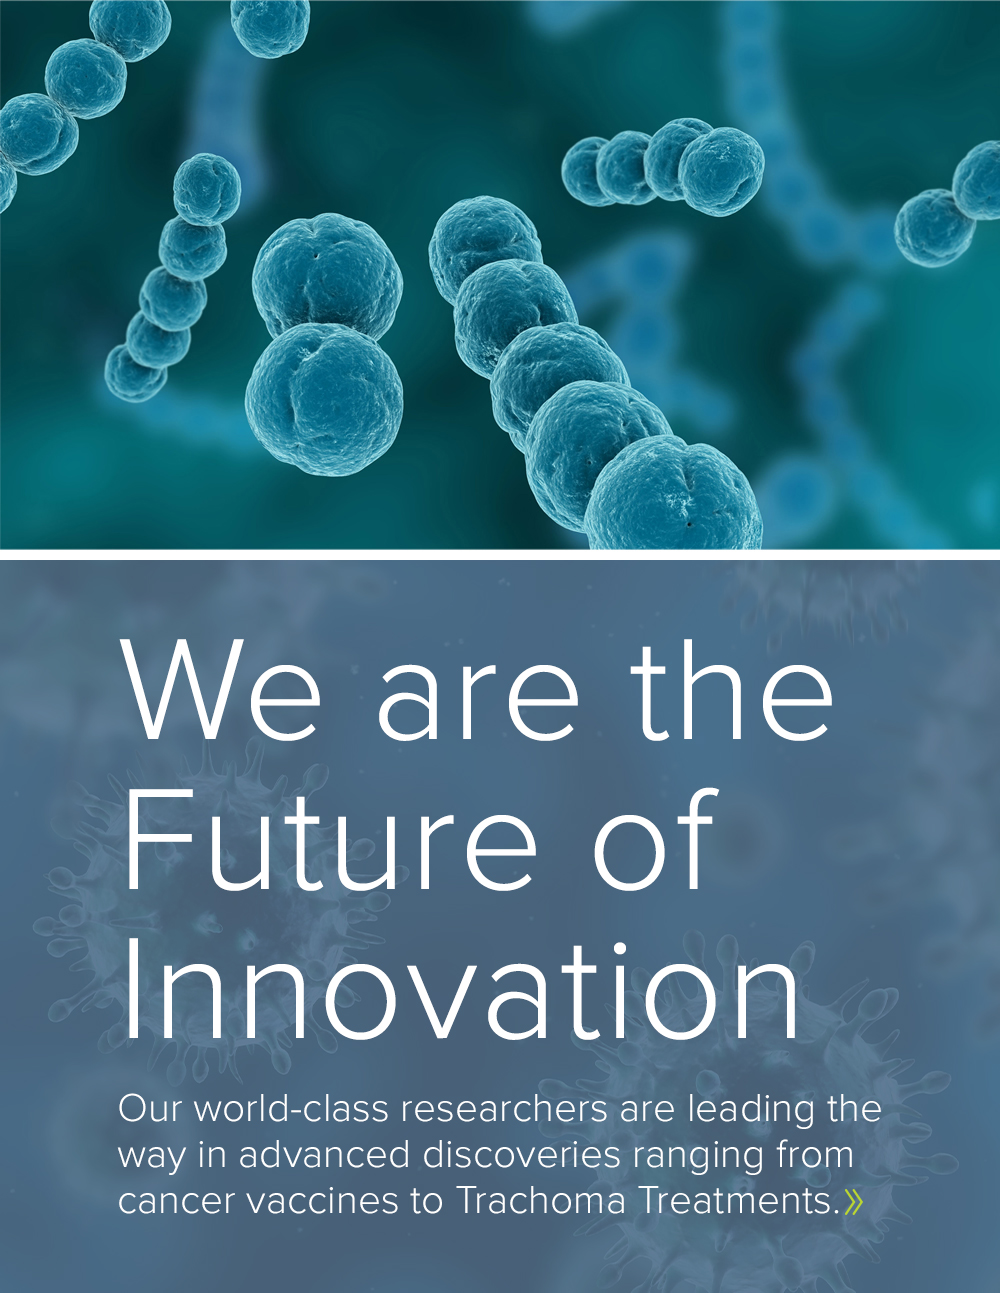 We are the future of innovation. Our world-class researchers are leading the way in advanced discoveries ranging from cancer vaccines to Trachoma Treatments.